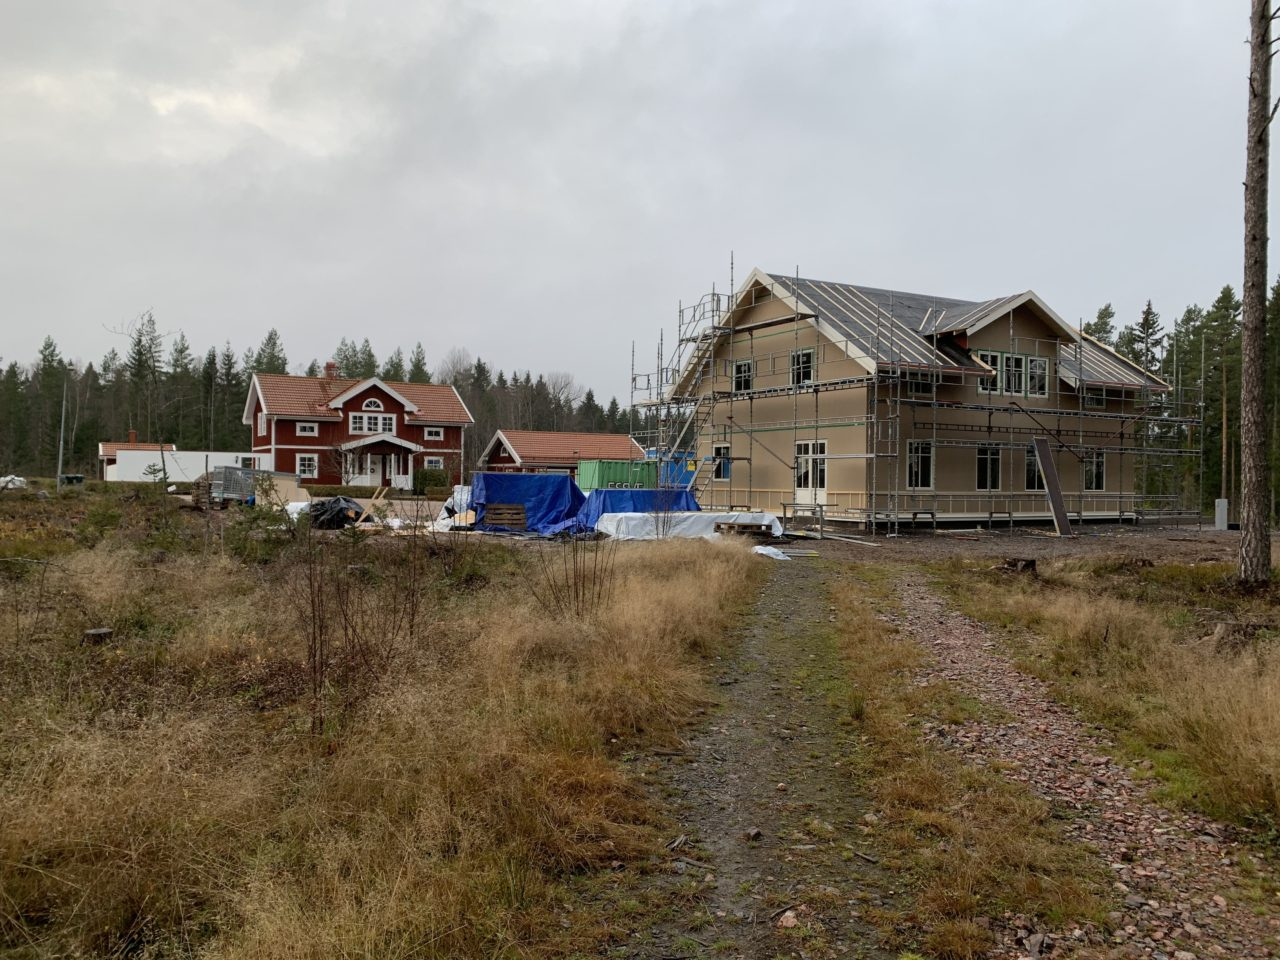 House Construction Site On A Field